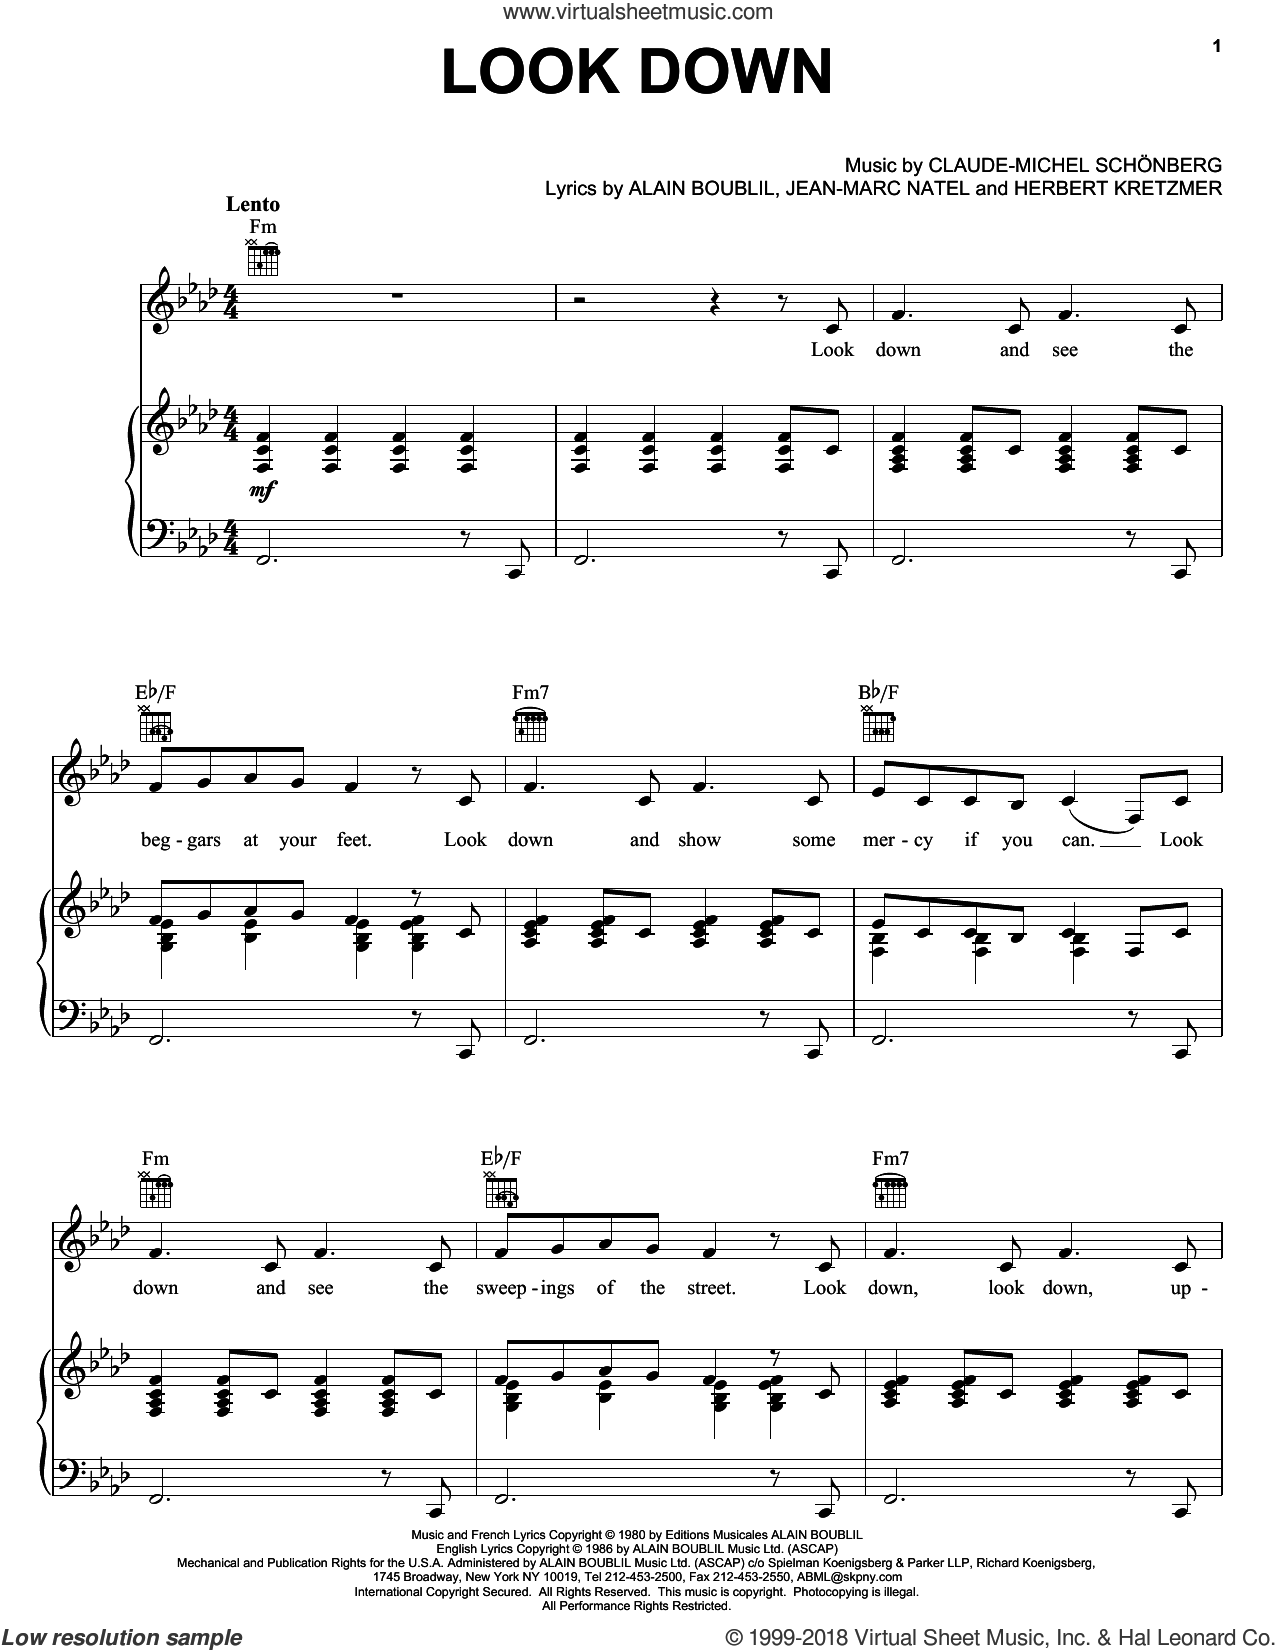 Look Down sheet music for voice, piano or guitar by Alain Boublil, Les Miserables (Musical), Claude-Michel Schonberg and Herbert Kretzmer, intermediate skill level